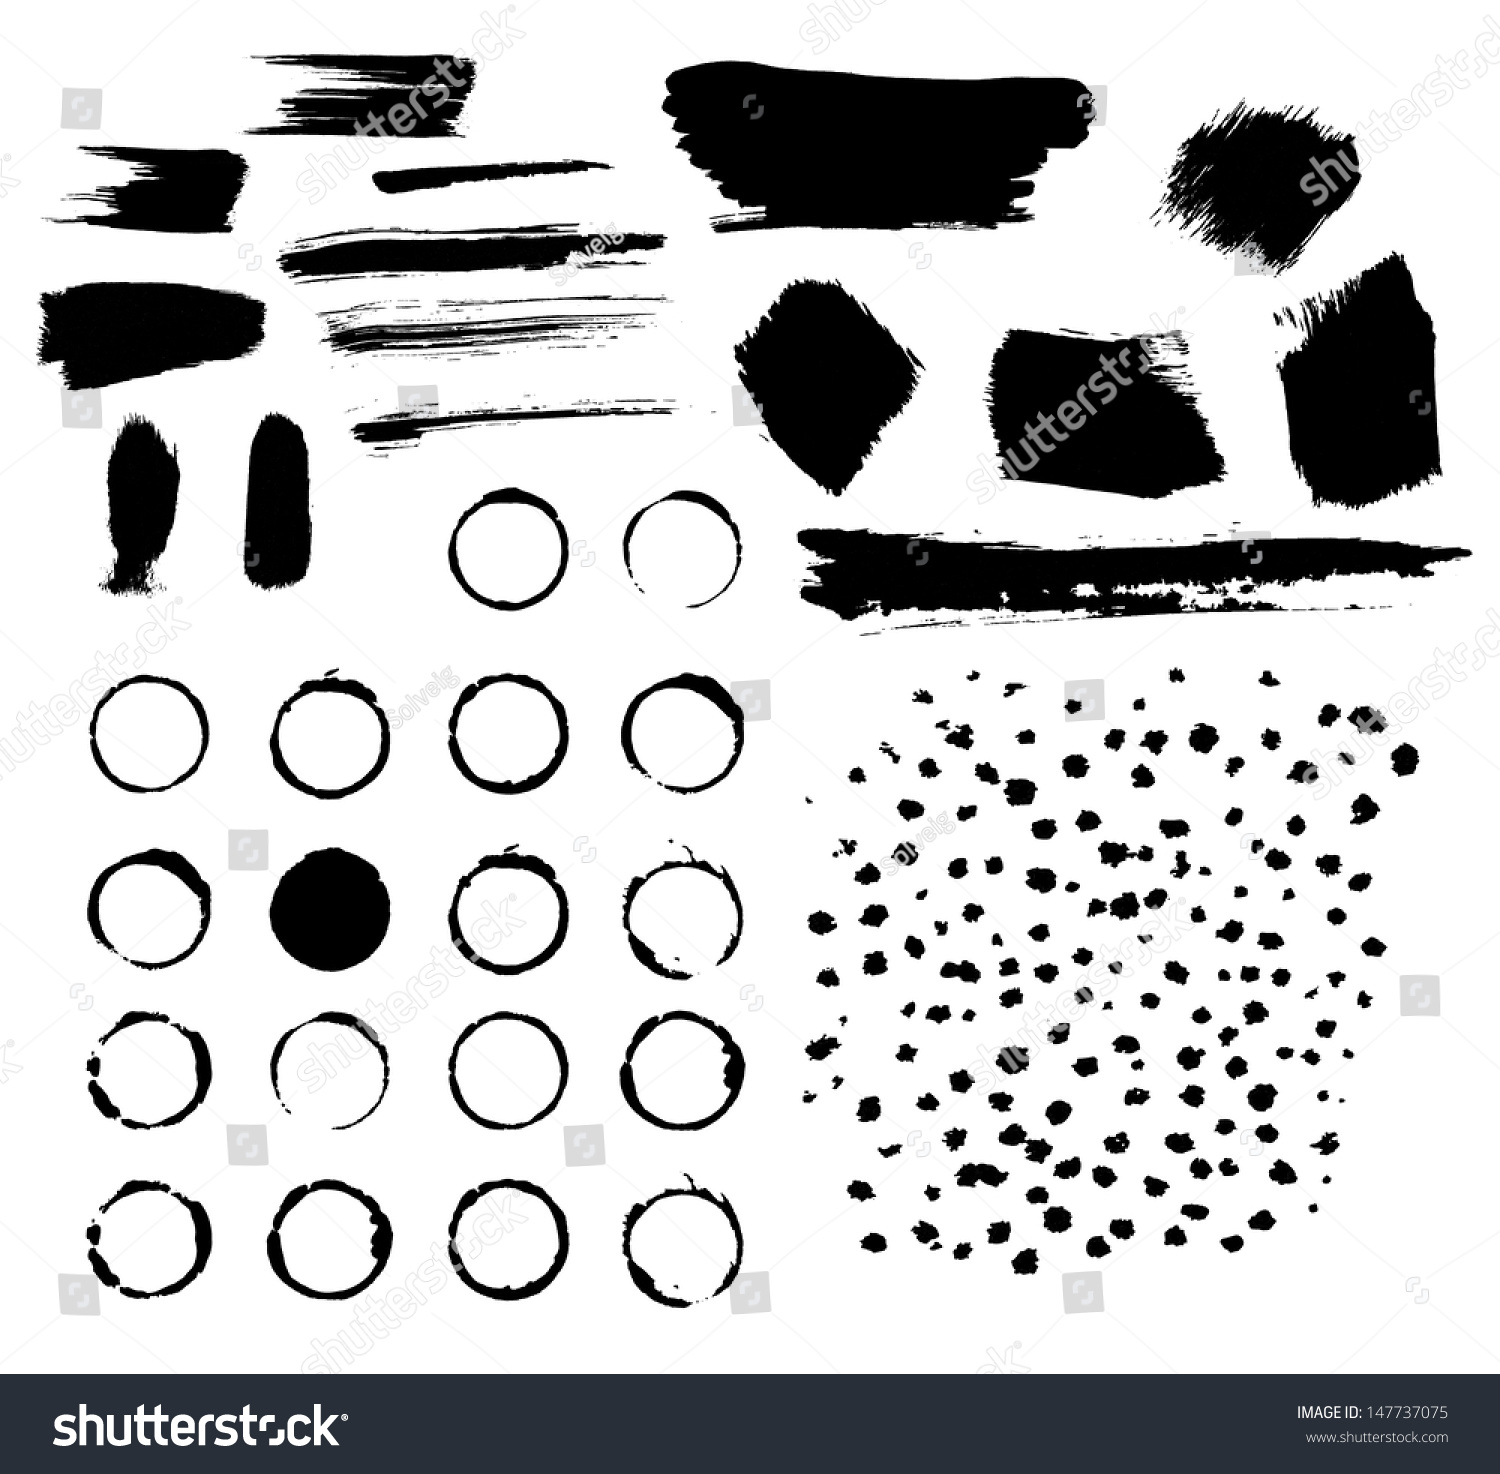 Vector grunge stains, strokes and round imprints.